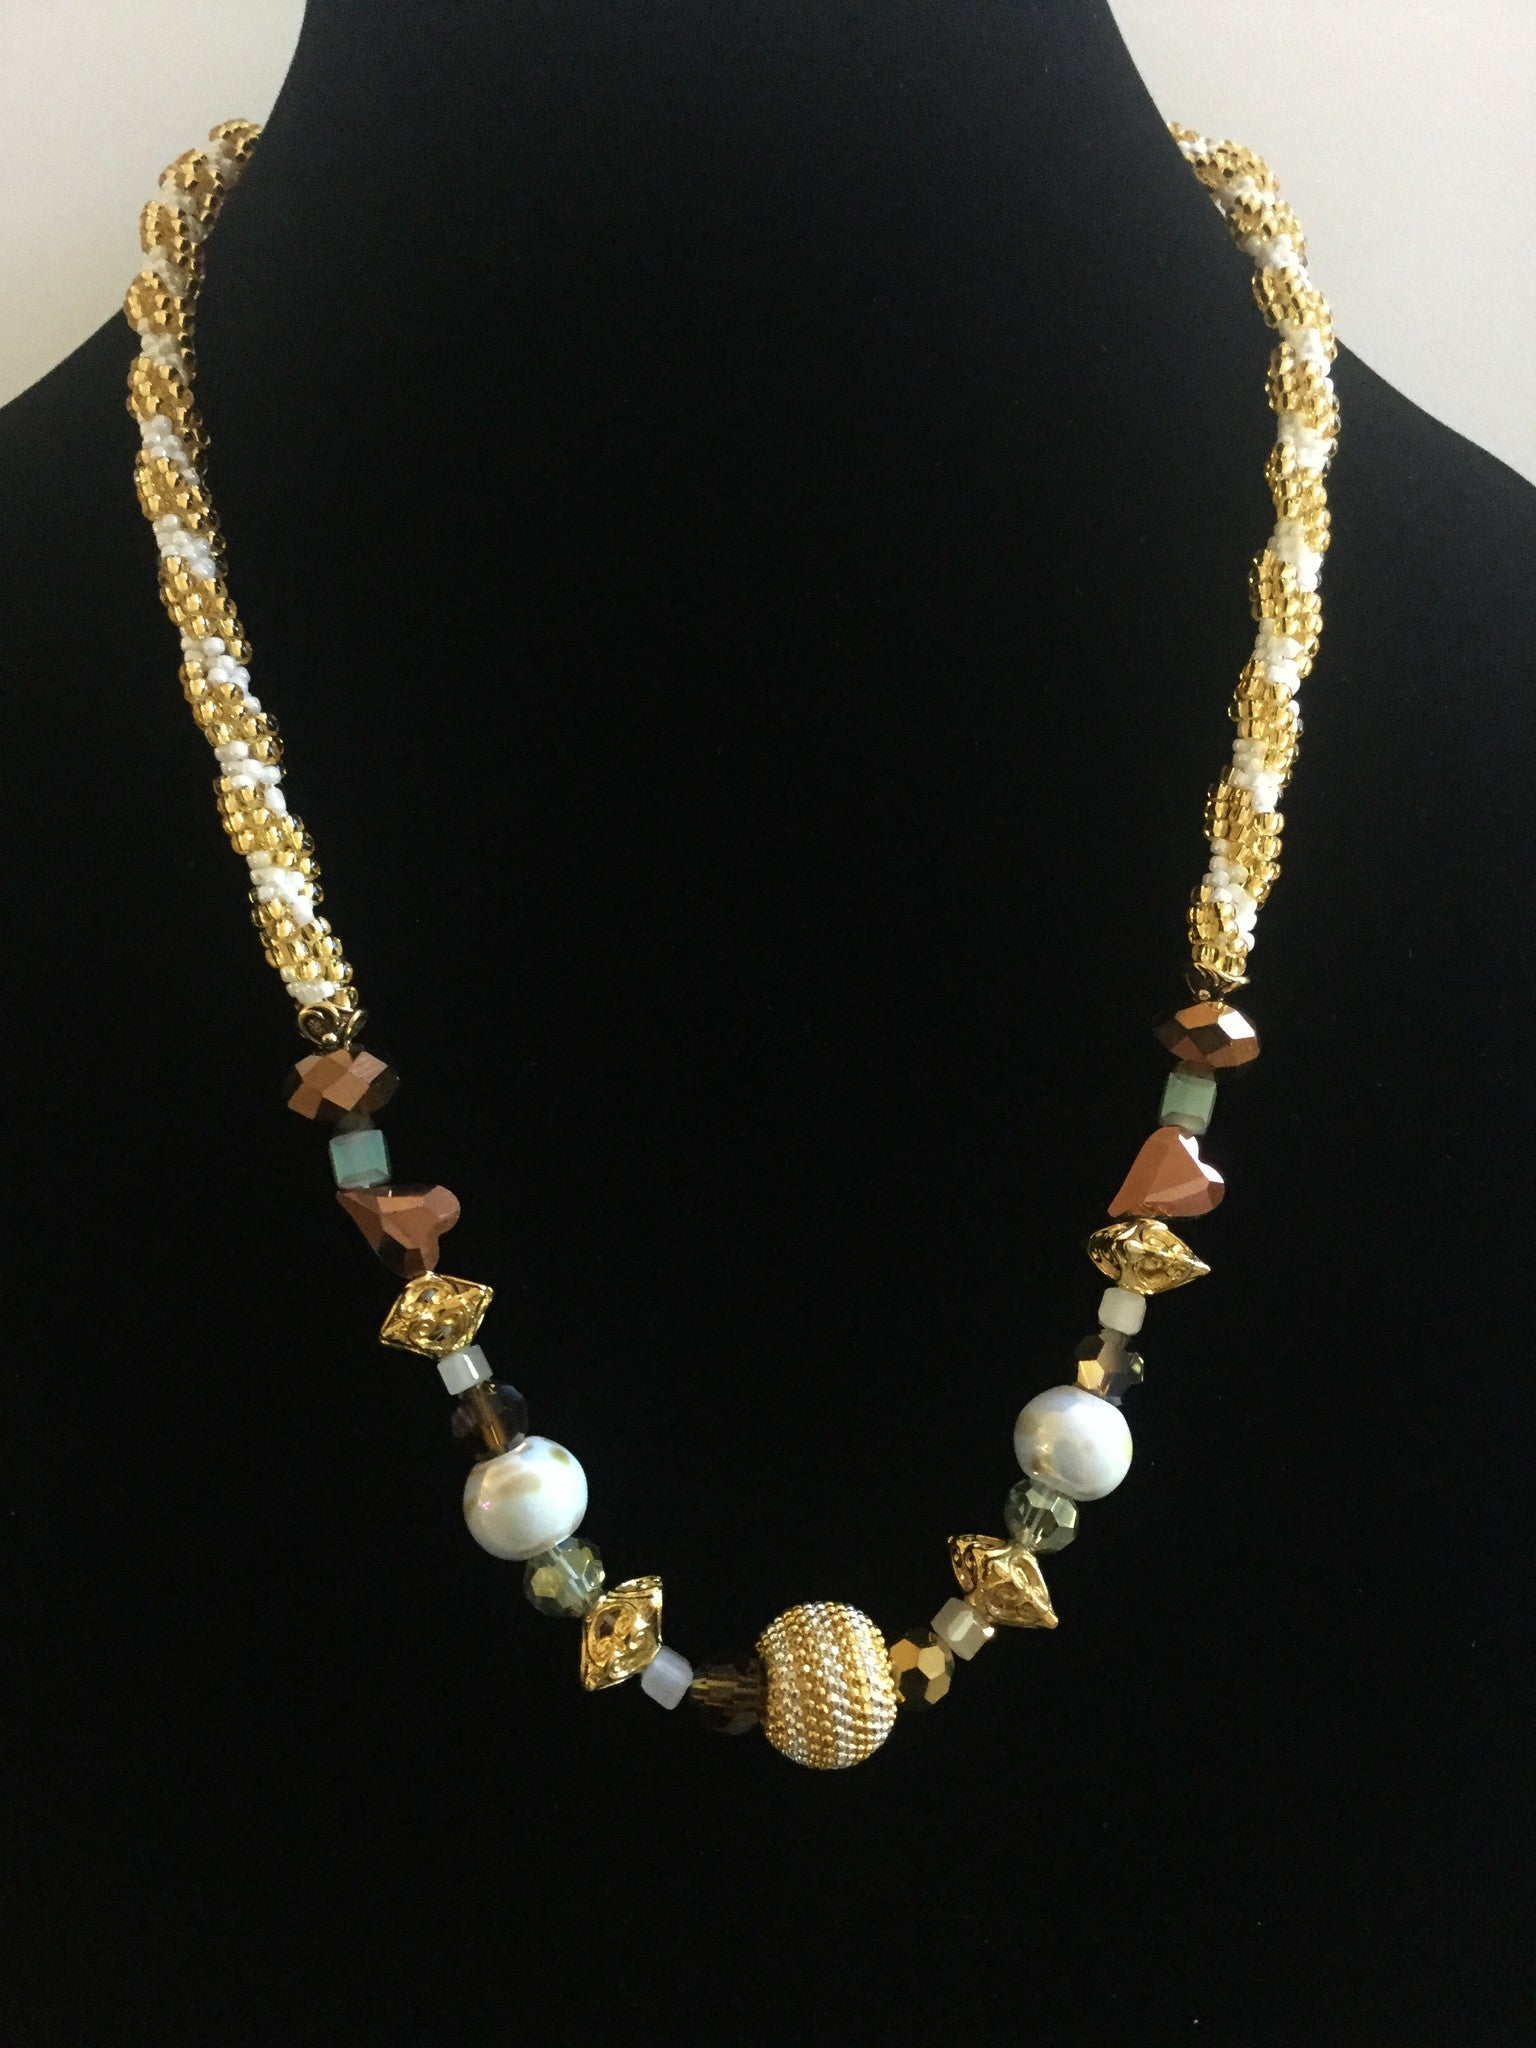 Topaz & White Kumihimo Necklace